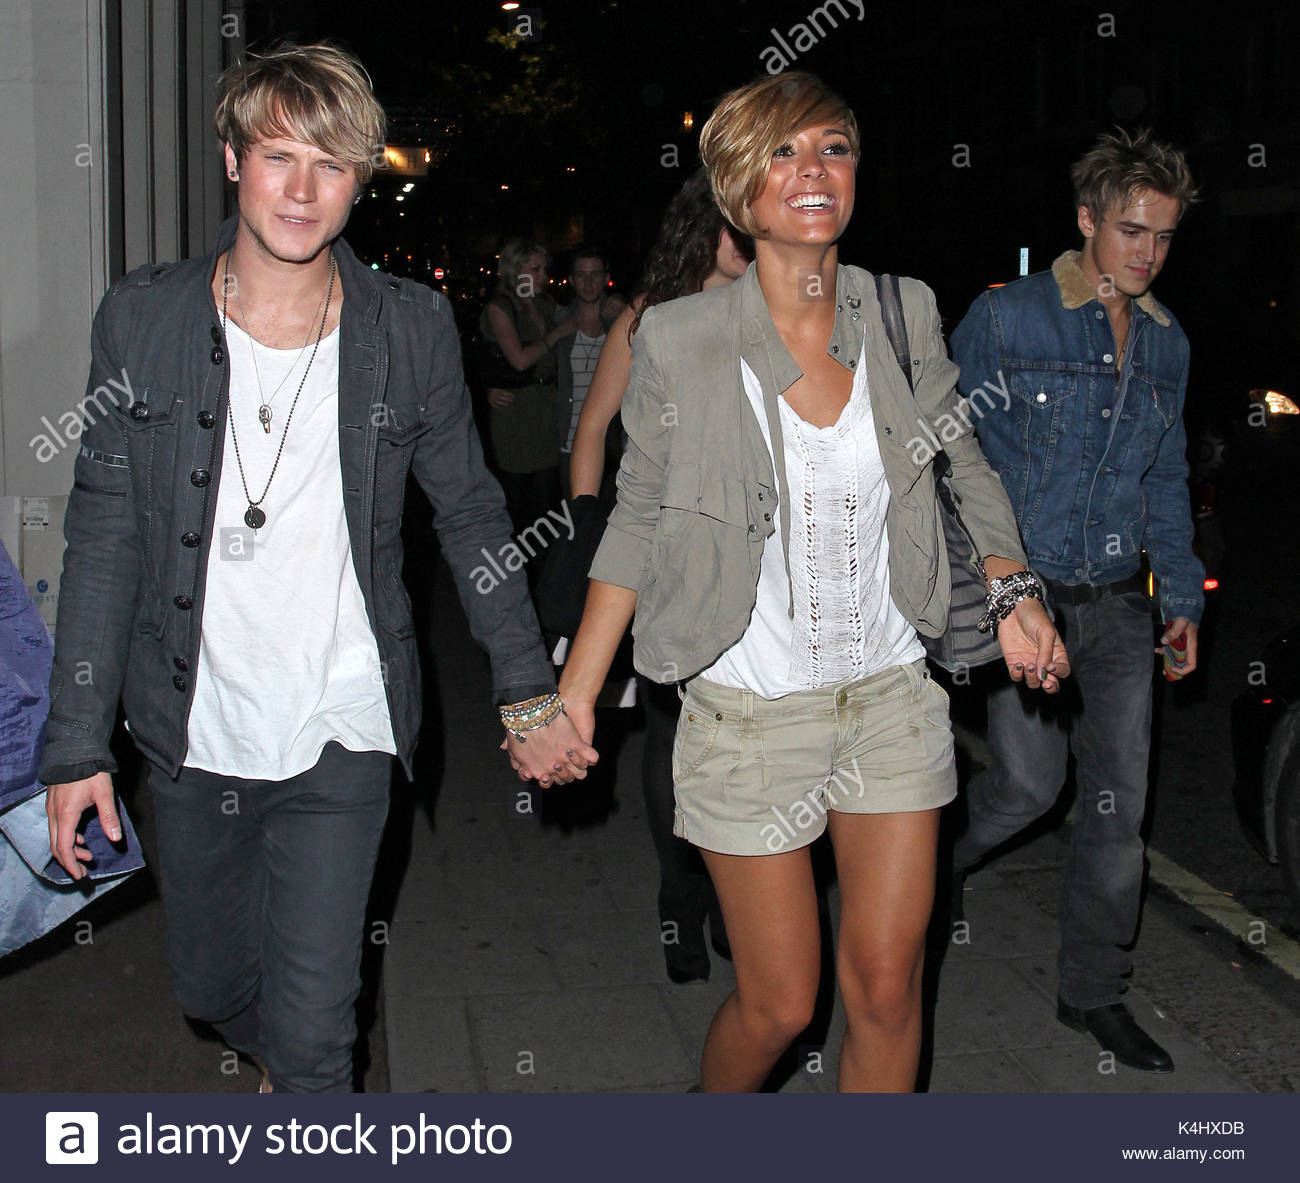 Dougie mcfly dating frankie saturdays